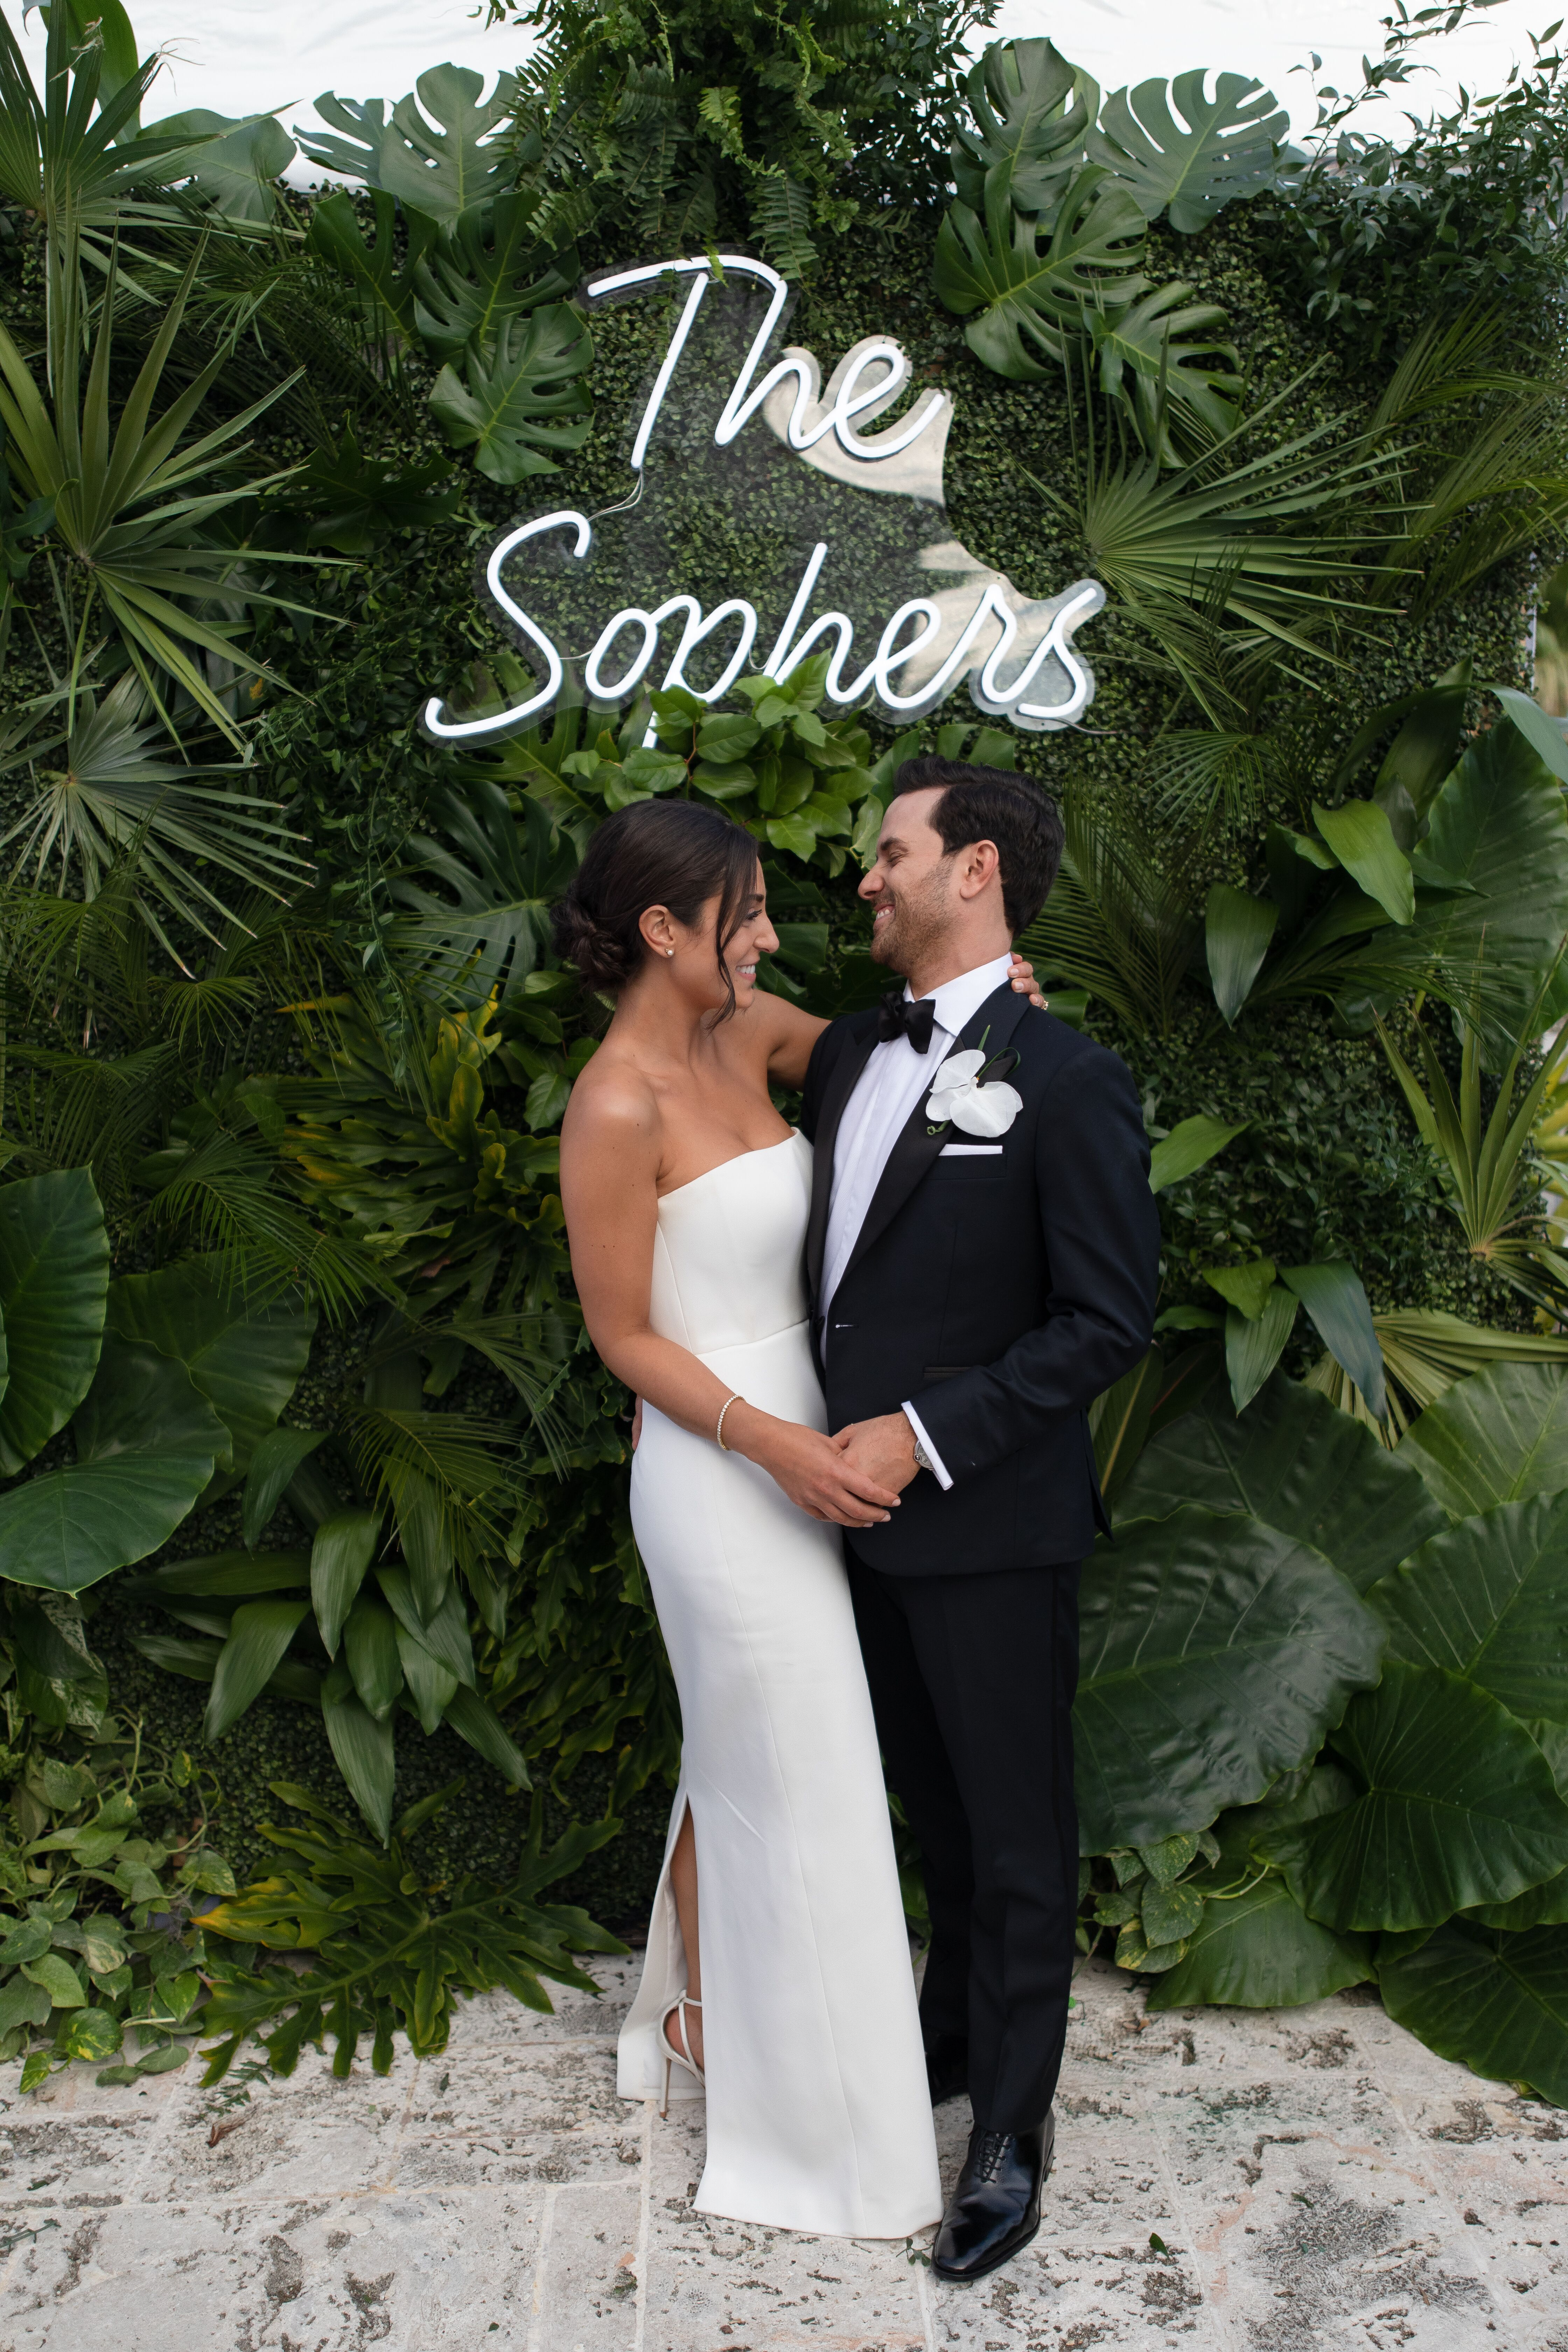 Custom neon wedding sign at ultimate Miami Beach bash at Fisher Island Club in Miami Beach, Florida. Brought to life by Florist and Planner- Ocean Flowers & Events and Photographer- Jonathan Scott Studio.